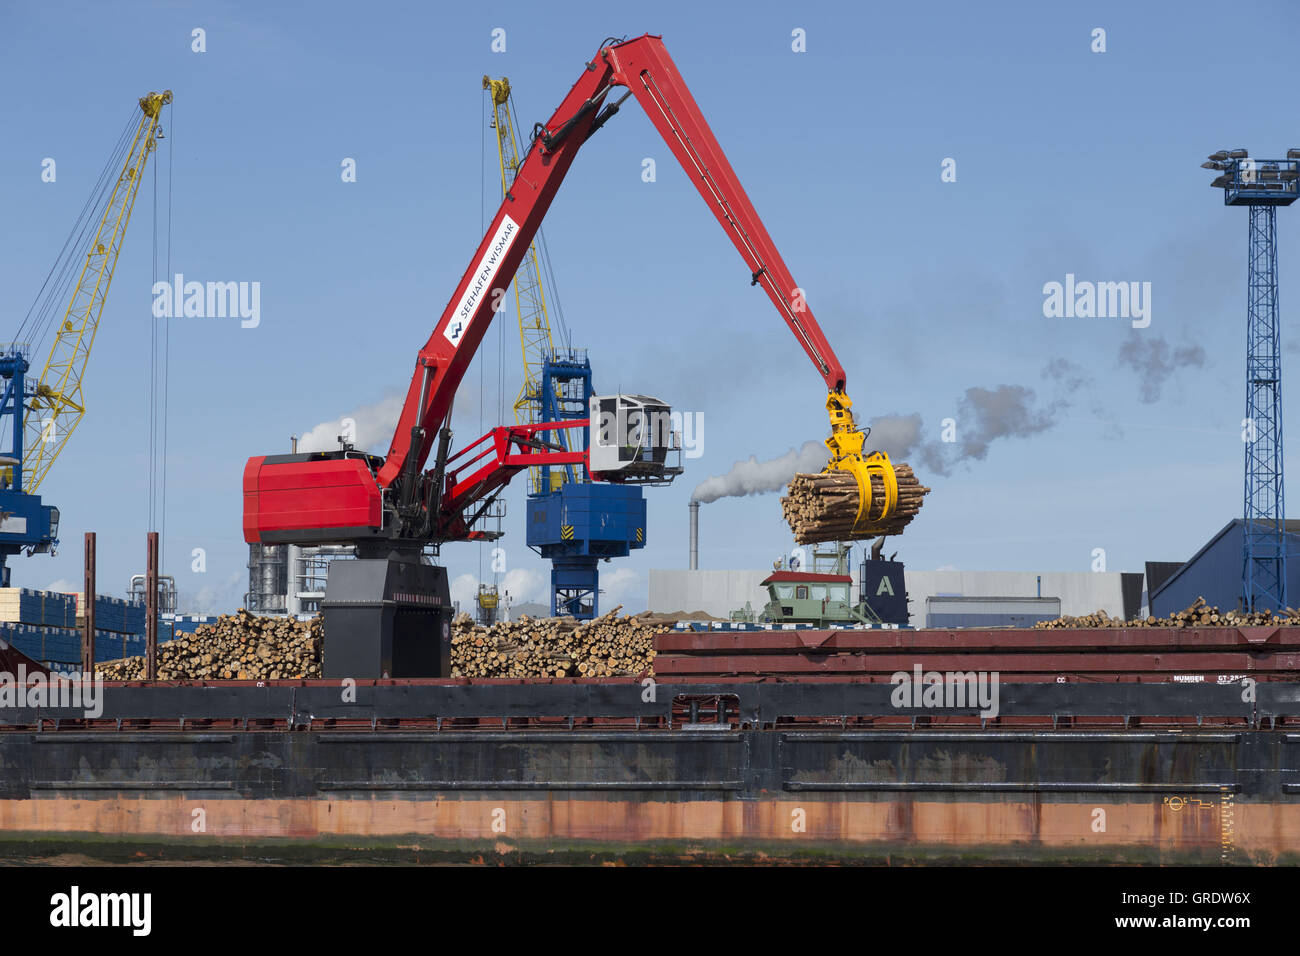 Large Red Excavator Unloads Timber From A Cargo Freighter In Port Of Wismar - Stock Image